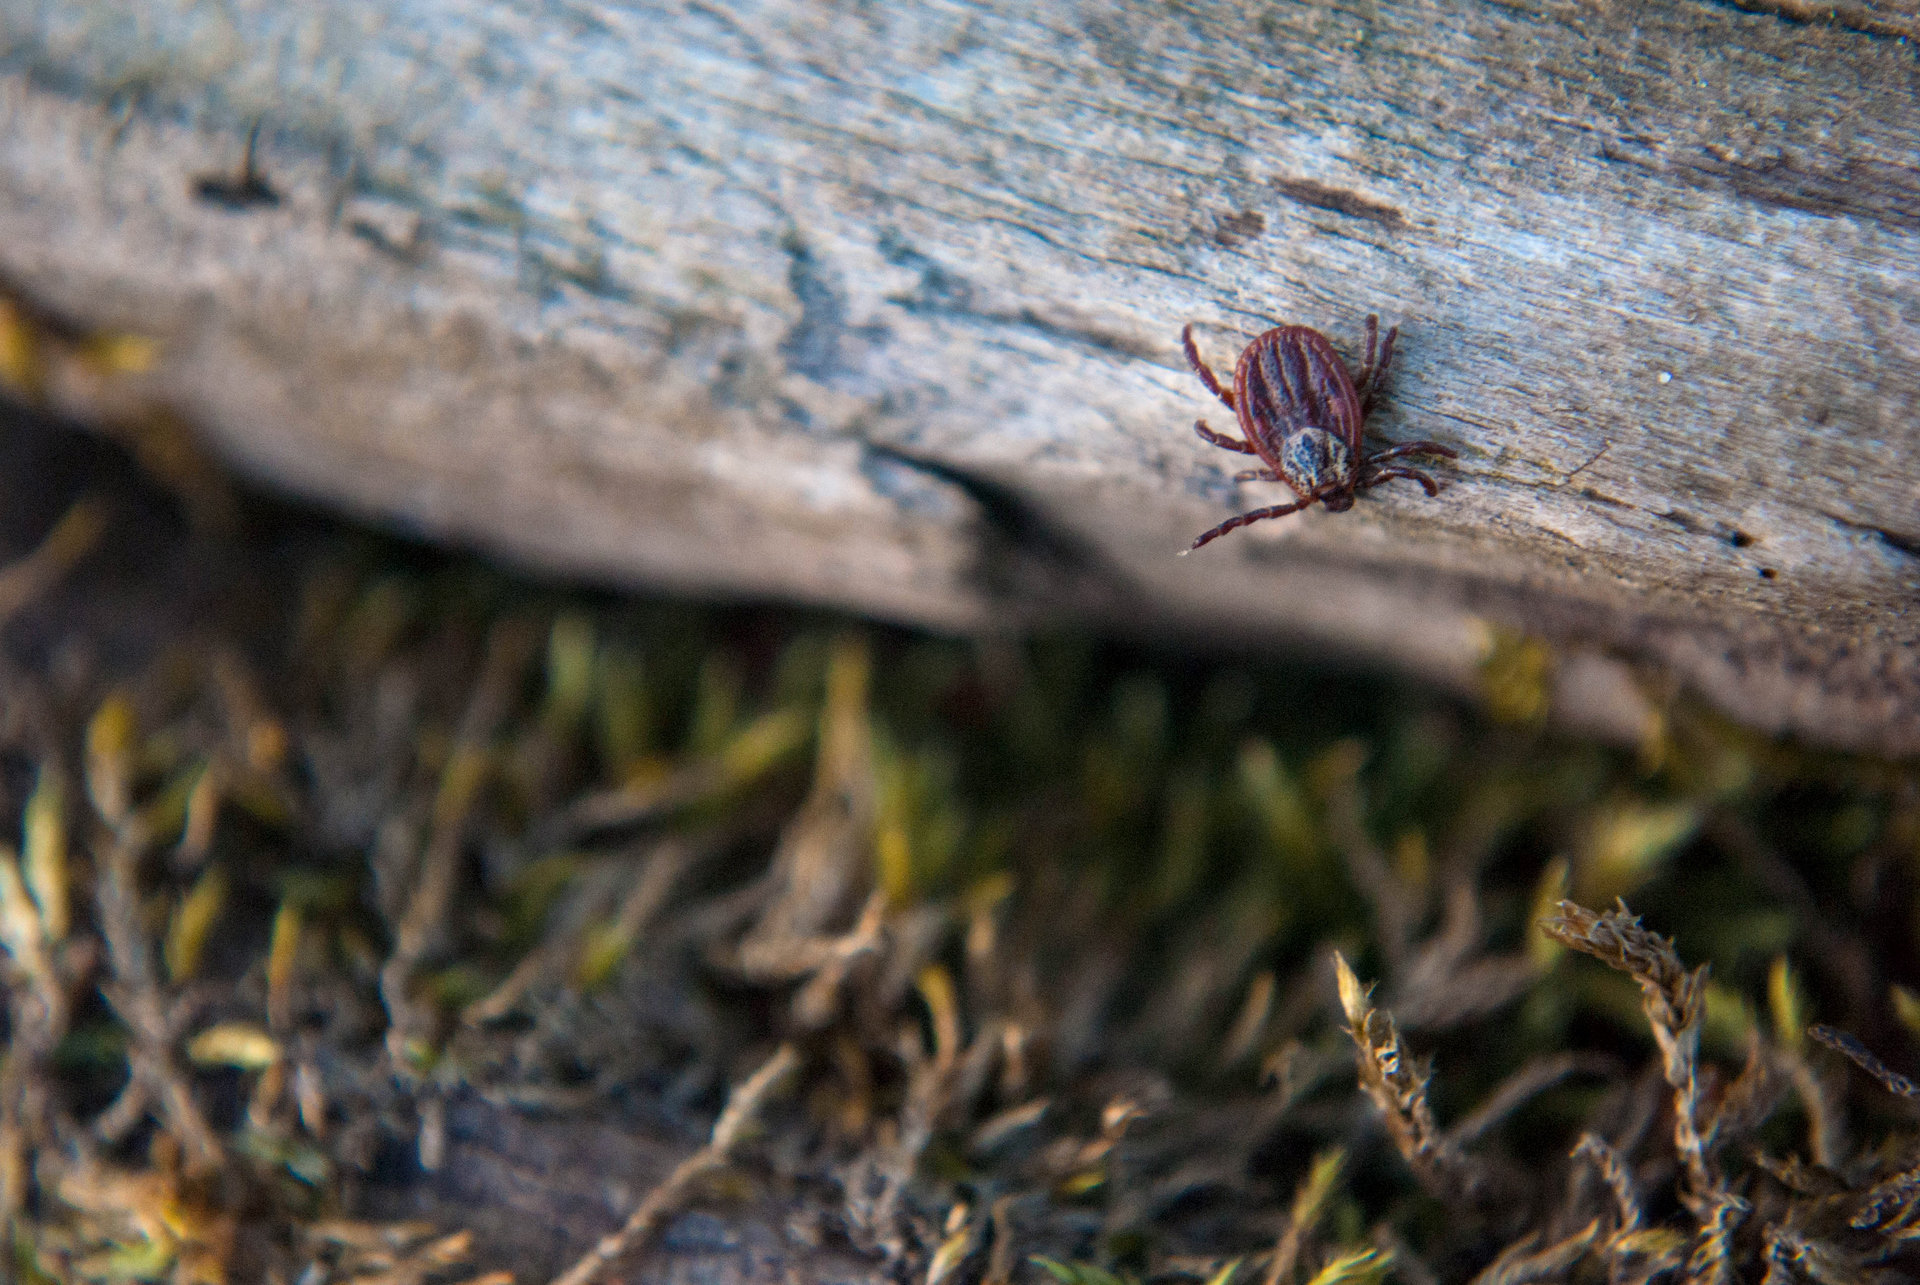 Planning a May weekend? Watch out for ticks